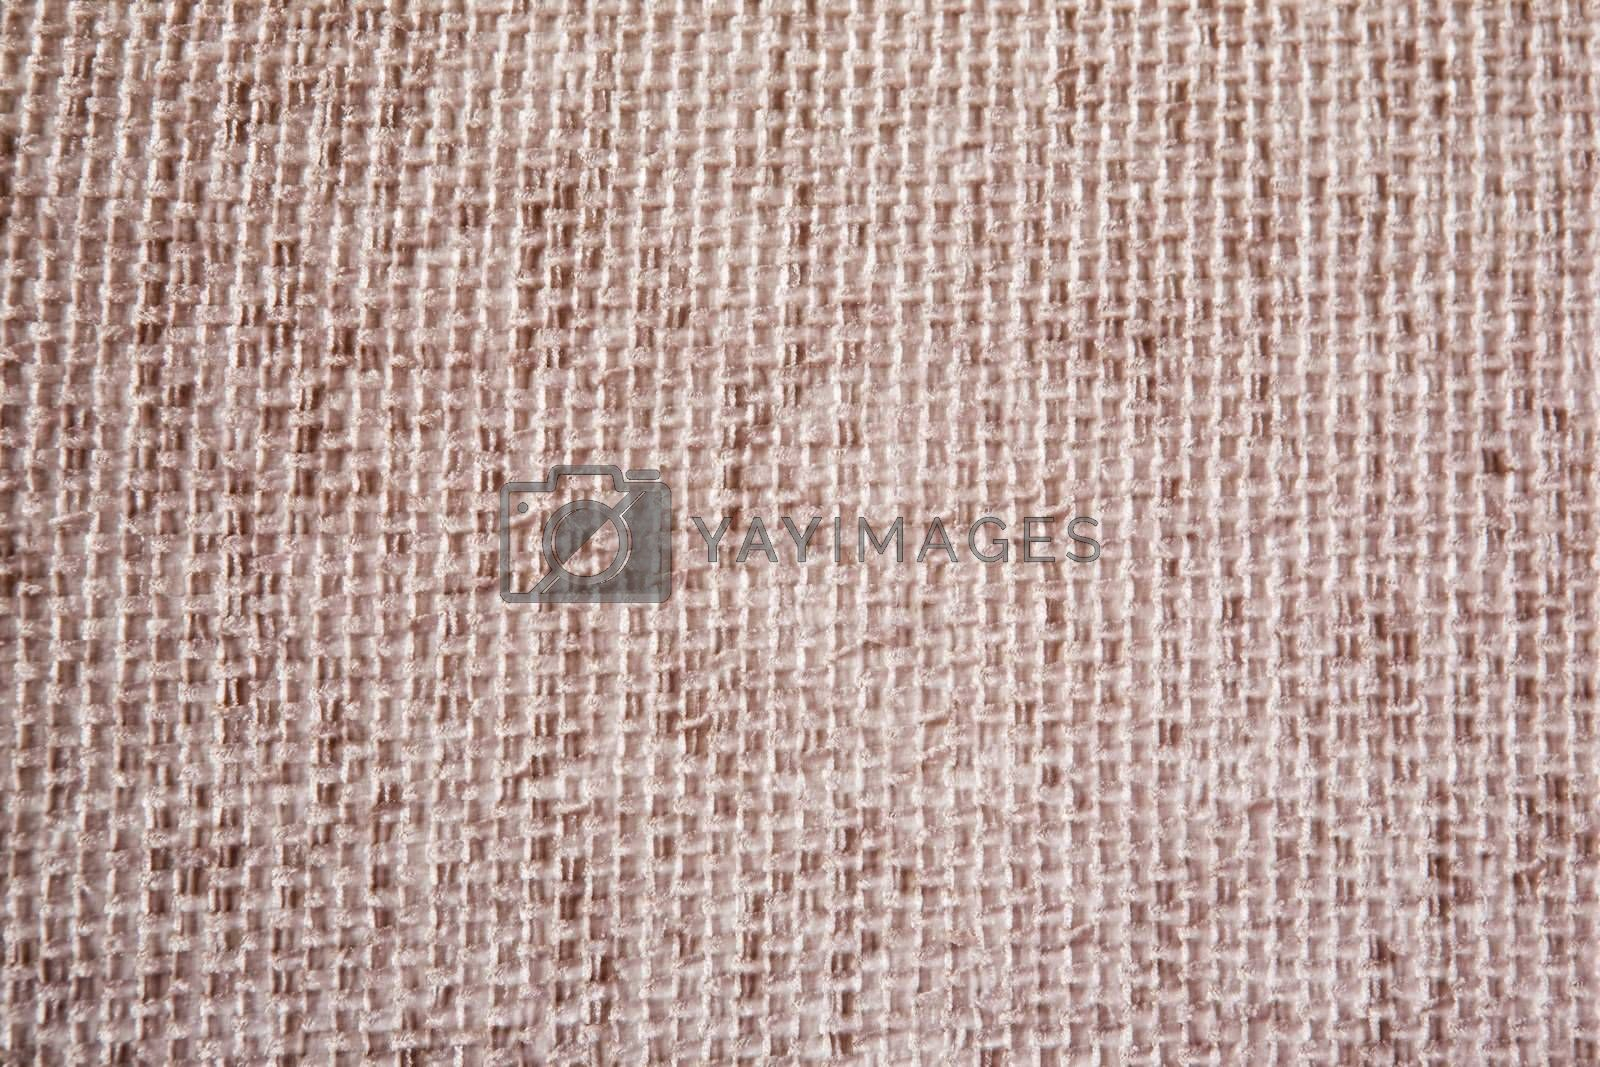 A detail image of a couch material